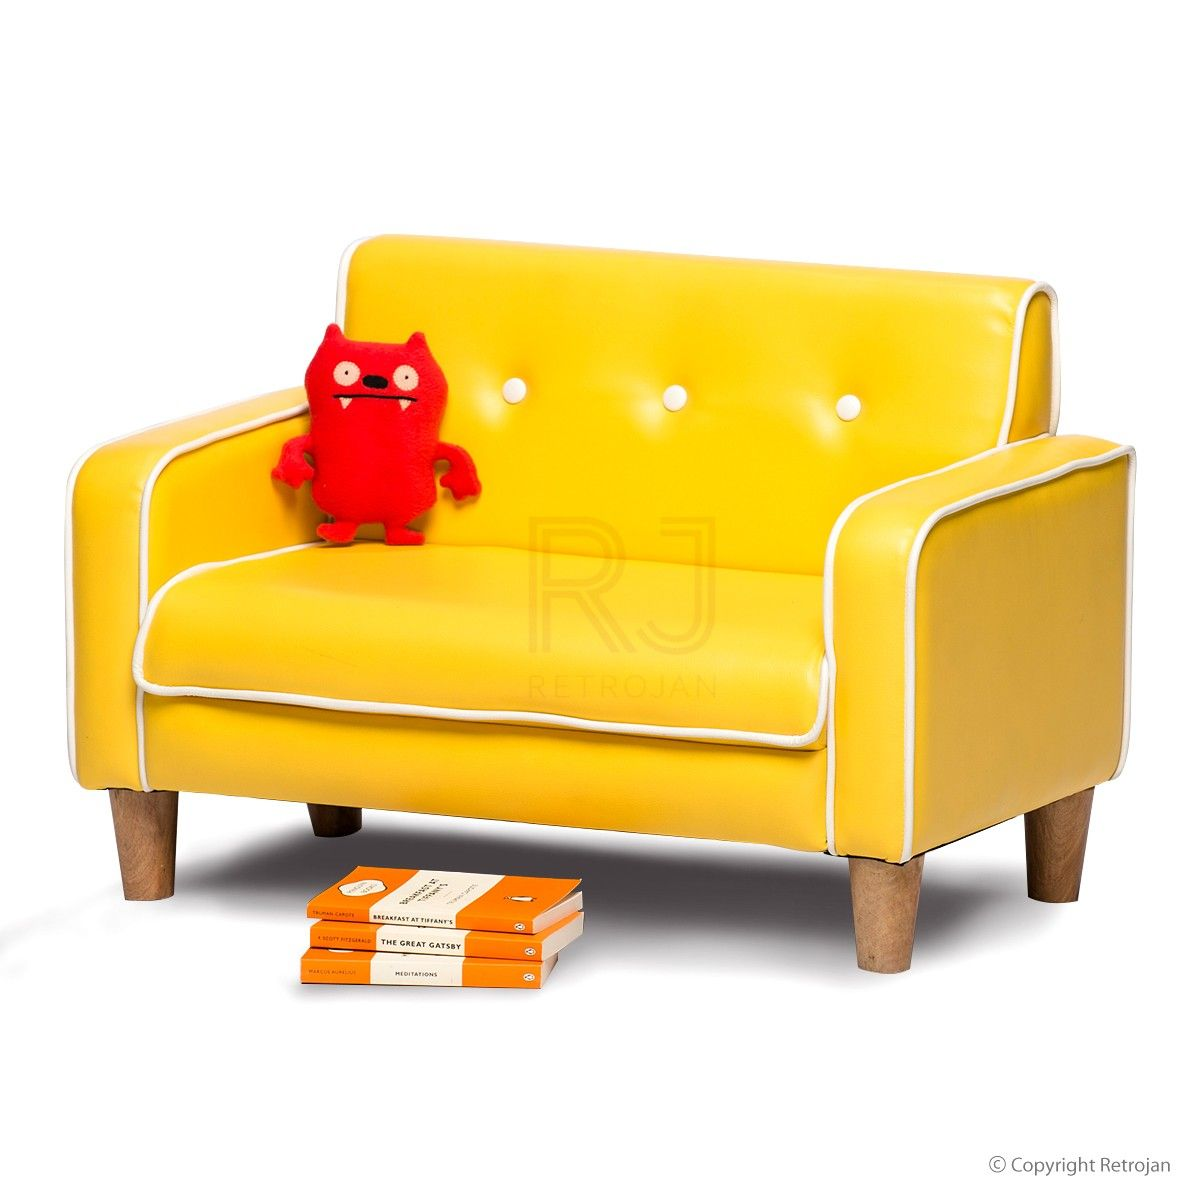 Buy El Nino Kids Sofa (Yellow) Online | Kids Furniture   Retrojan